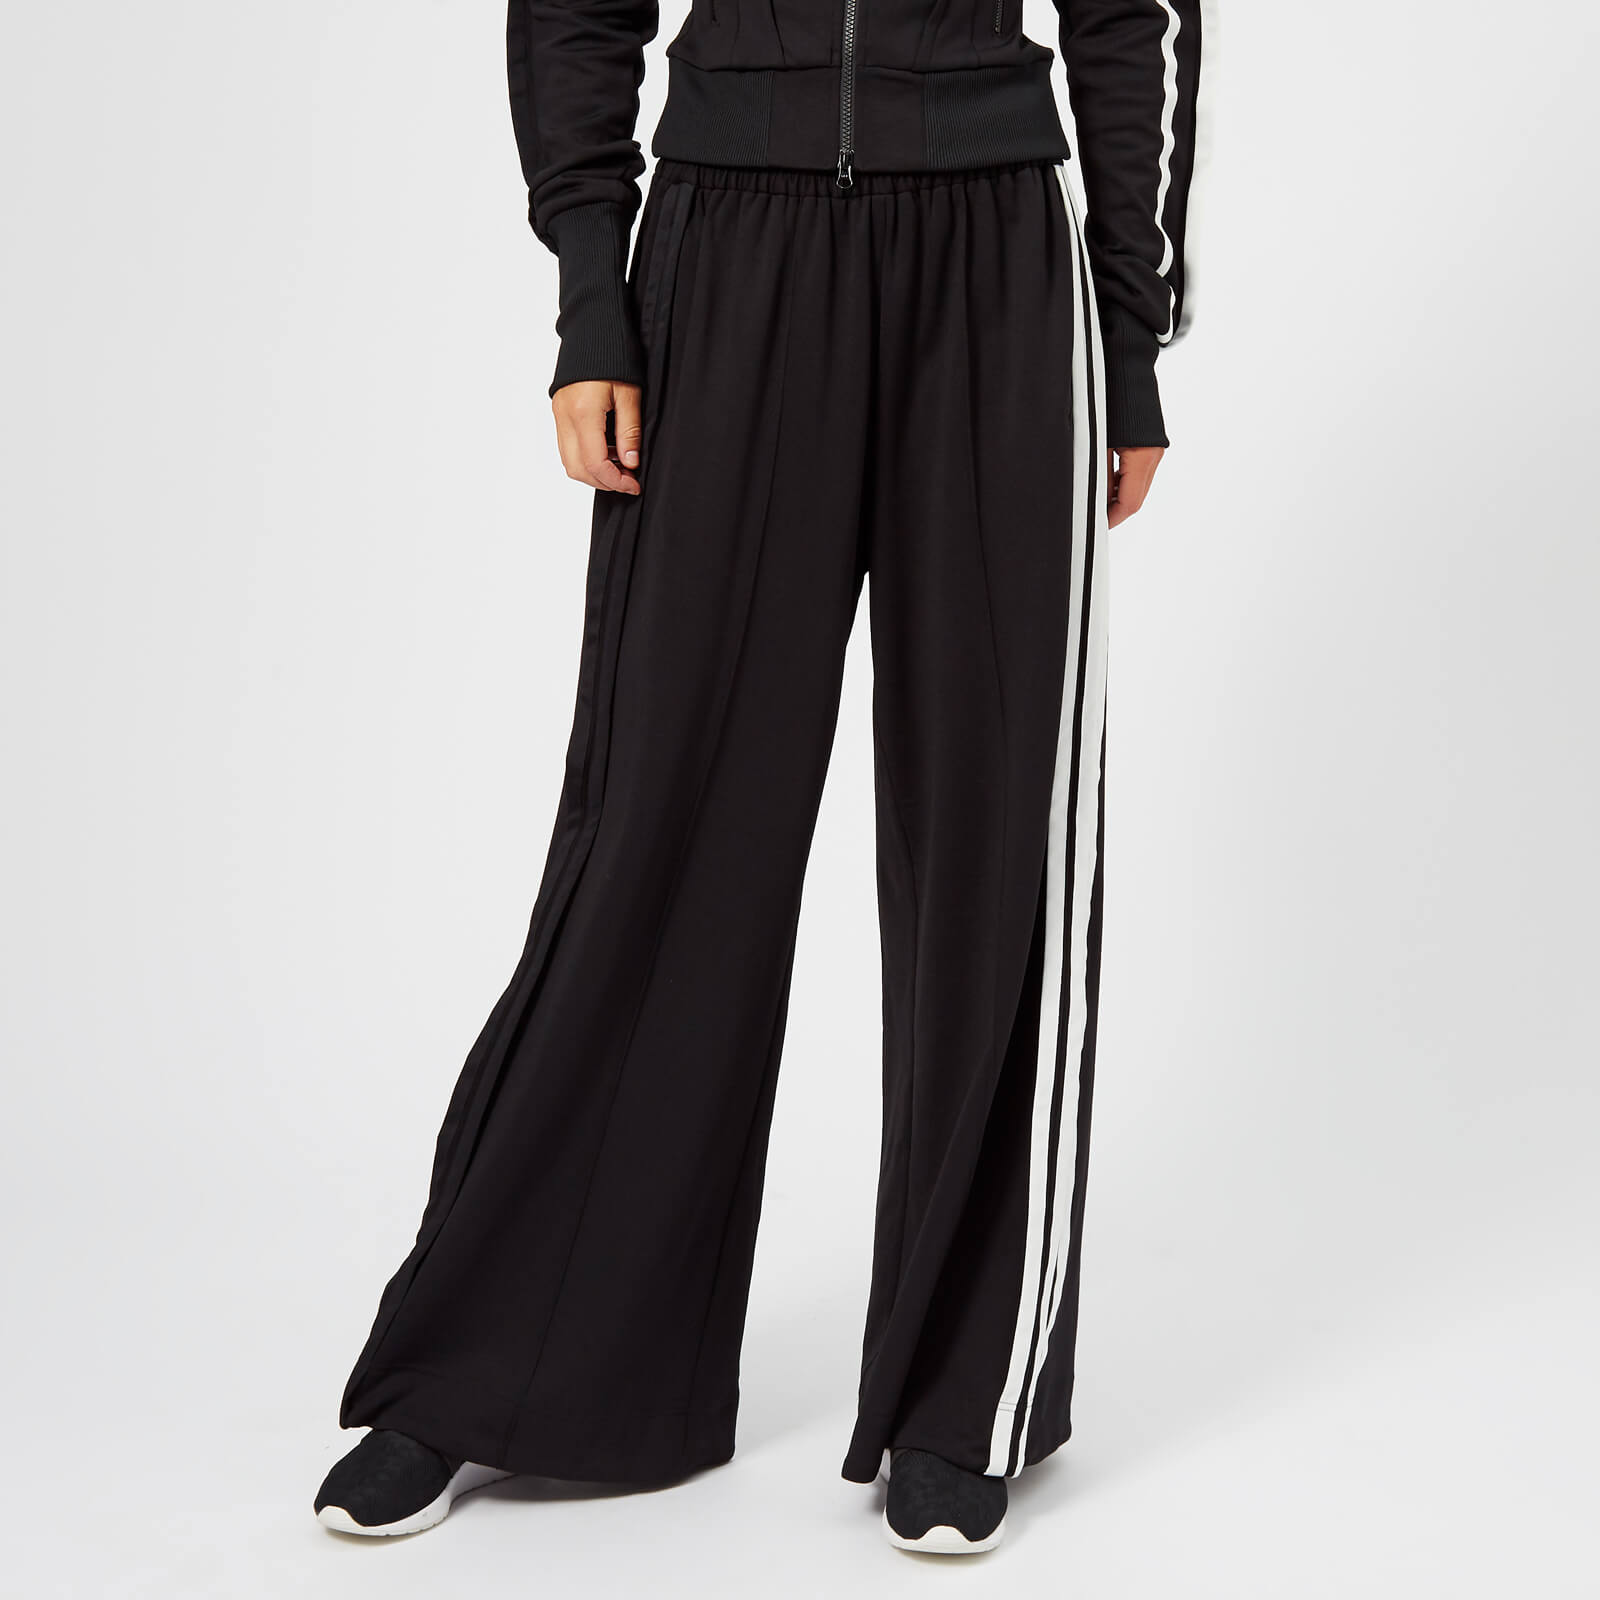 43d4571052567 Y-3 Women s 3 Stripe Selvedge Matte Track Pants - Black Core White - Free  UK Delivery over £50